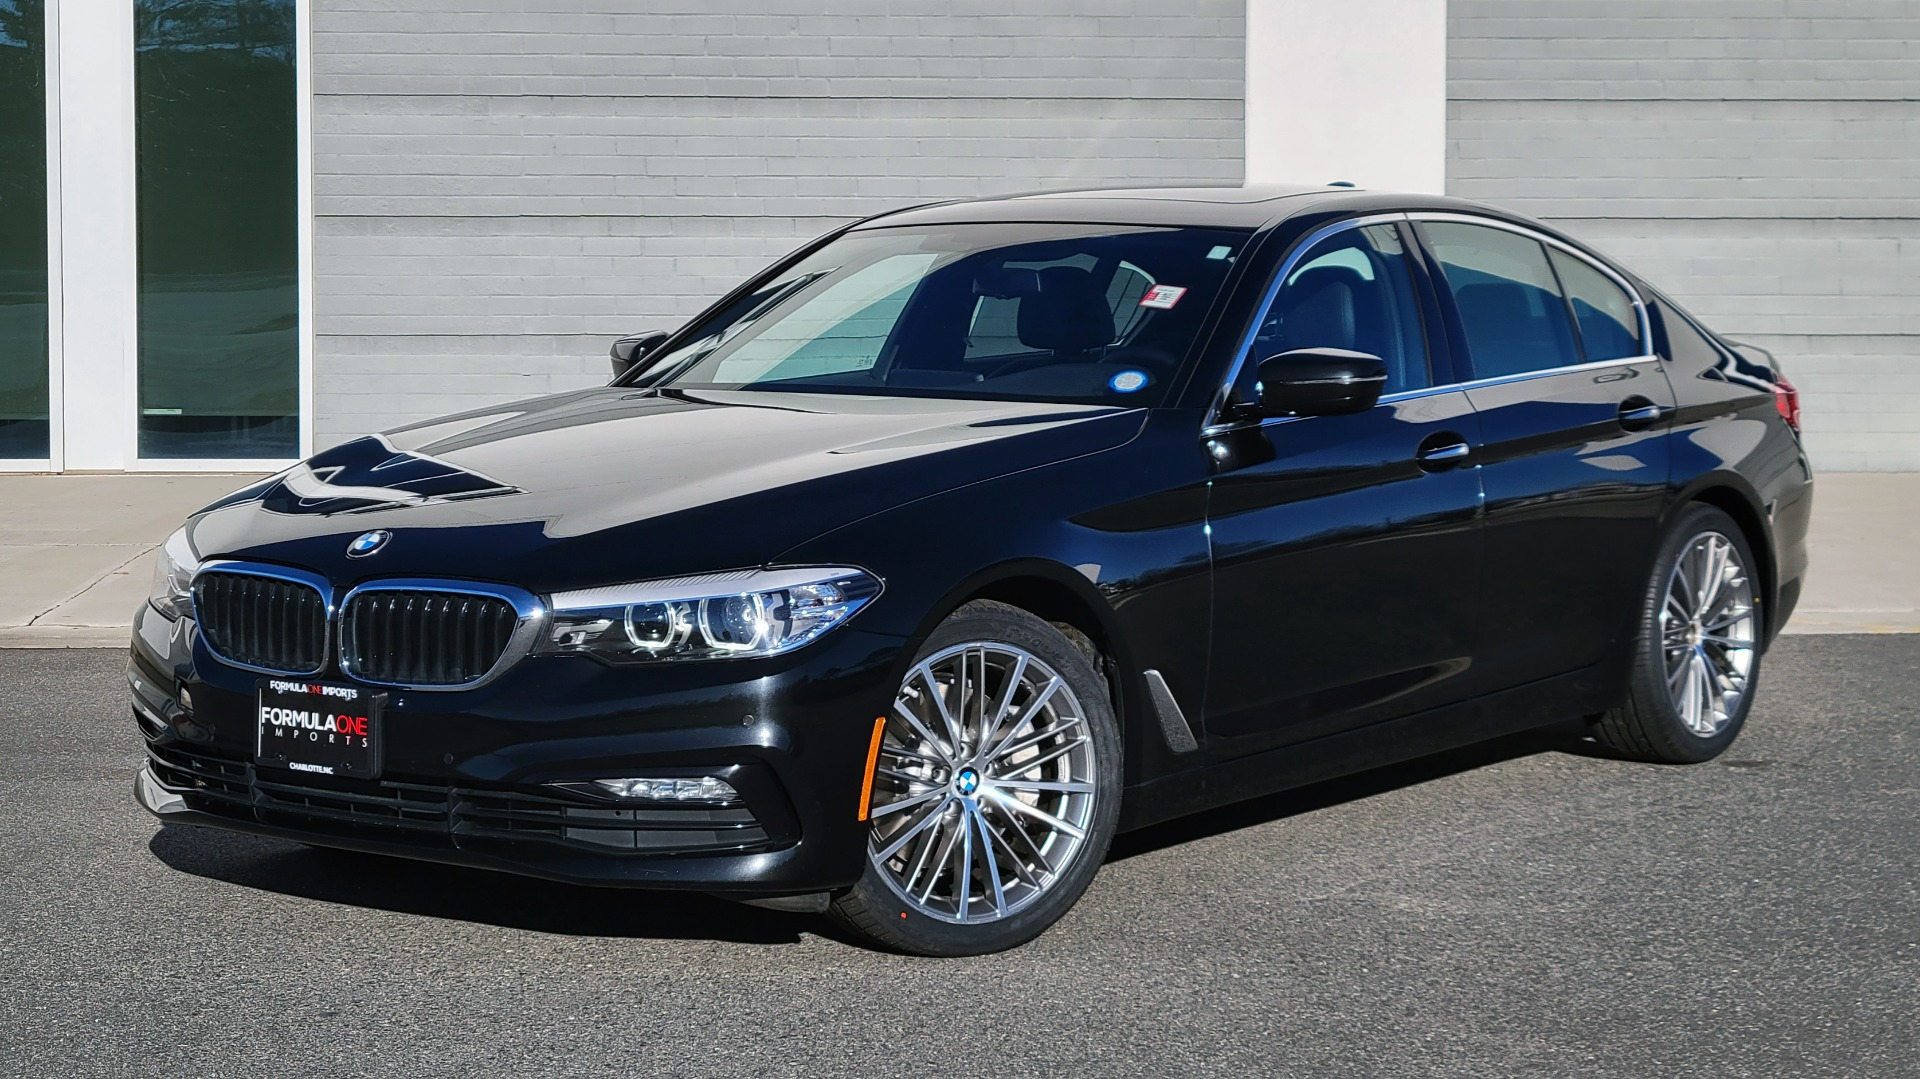 Used 2017 BMW 5 SERIES 530I XDRIVE PREMIUM / NAV / SUNROOF / PARK ASST / CLOD WTHR / REARVIEW for sale Sold at Formula Imports in Charlotte NC 28227 1